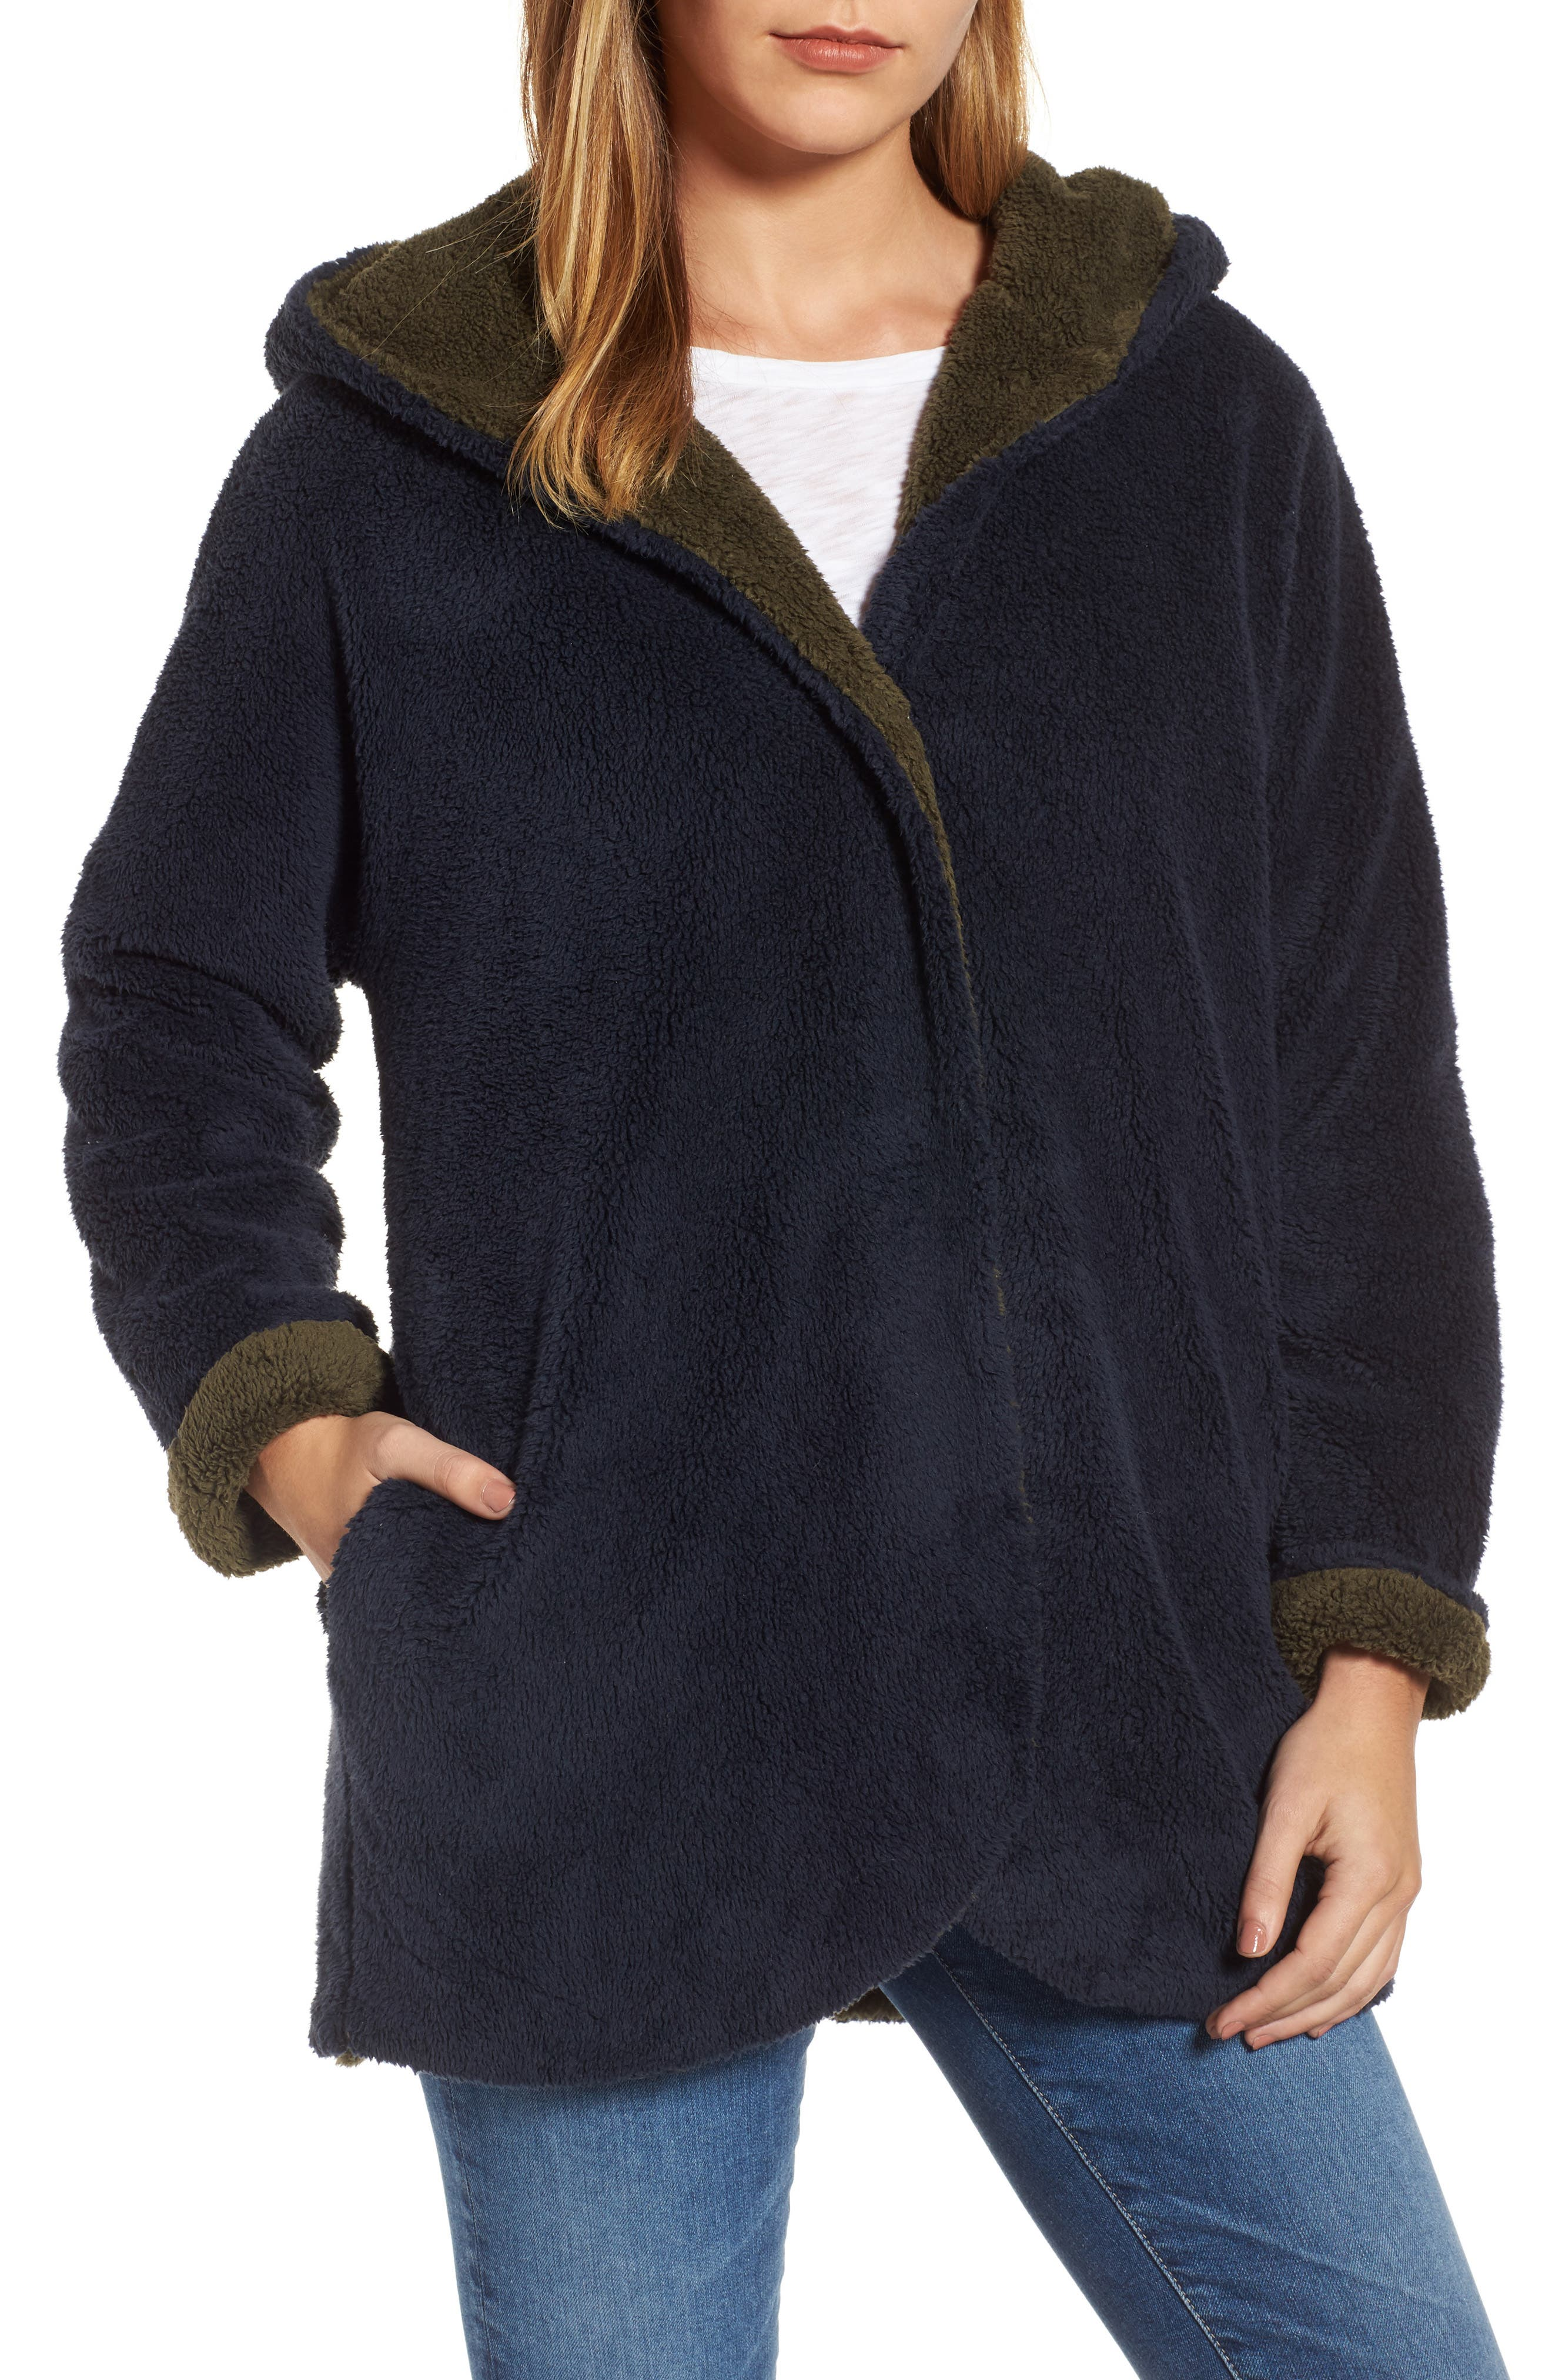 Hooded Reversible Coat,                         Main,                         color, Navy/ Olive